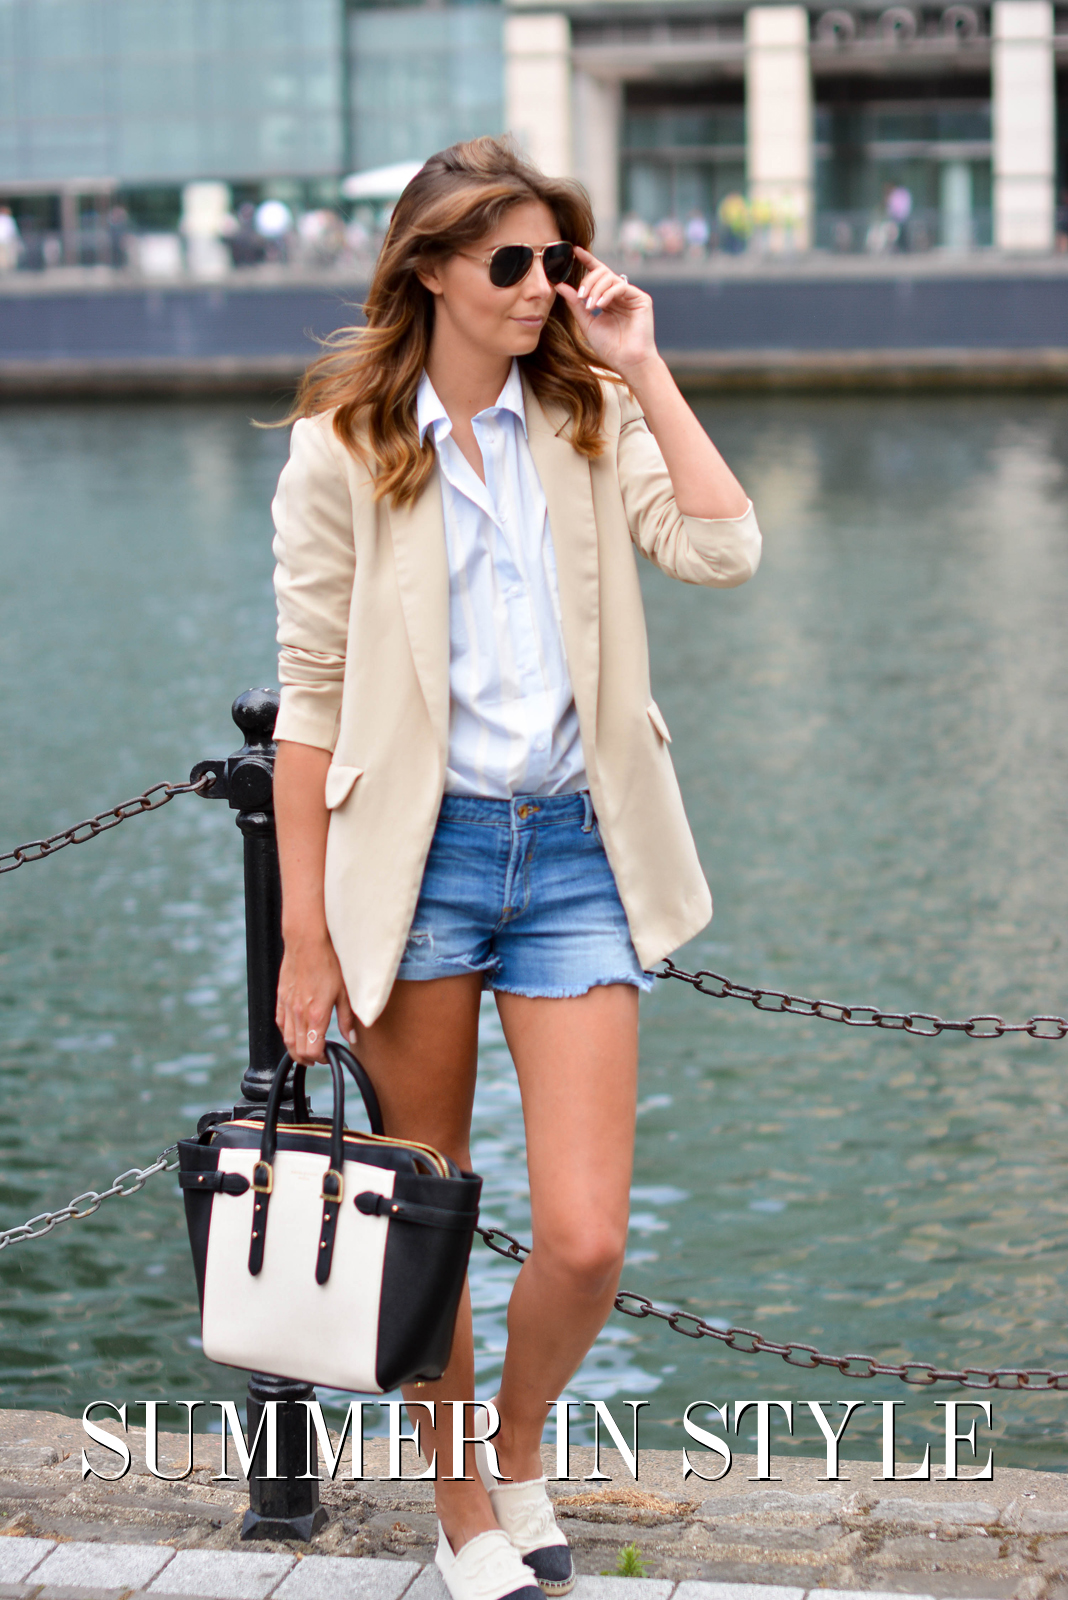 EJSTYLE - Beige long boyfriend blazer, blue stripe ASOS shirt, Denim shorts, Aspinal of London bag, gold aviator sunglasses, Chanel cream canvas espadrilles, TITLE